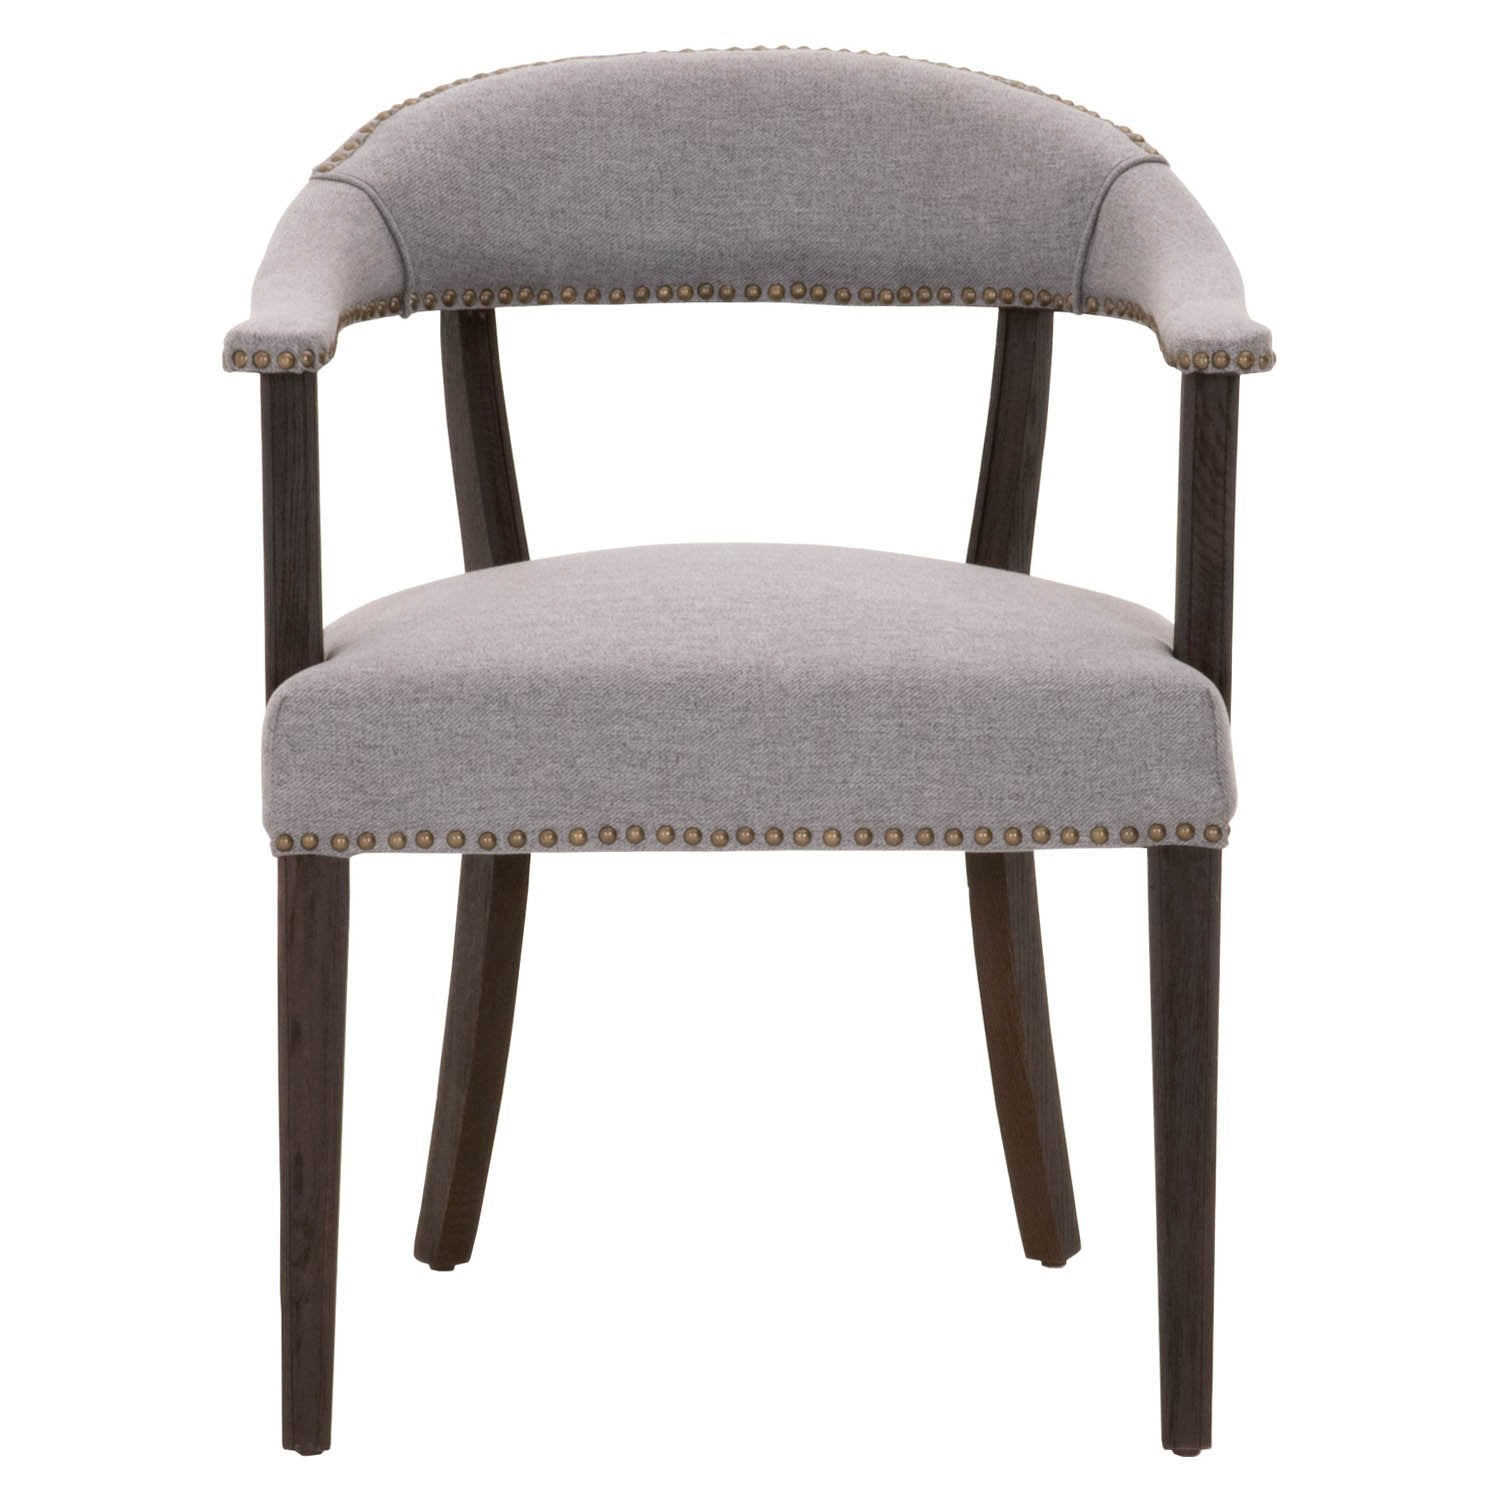 Ansel Accent Chair in Earl Gray Fabric